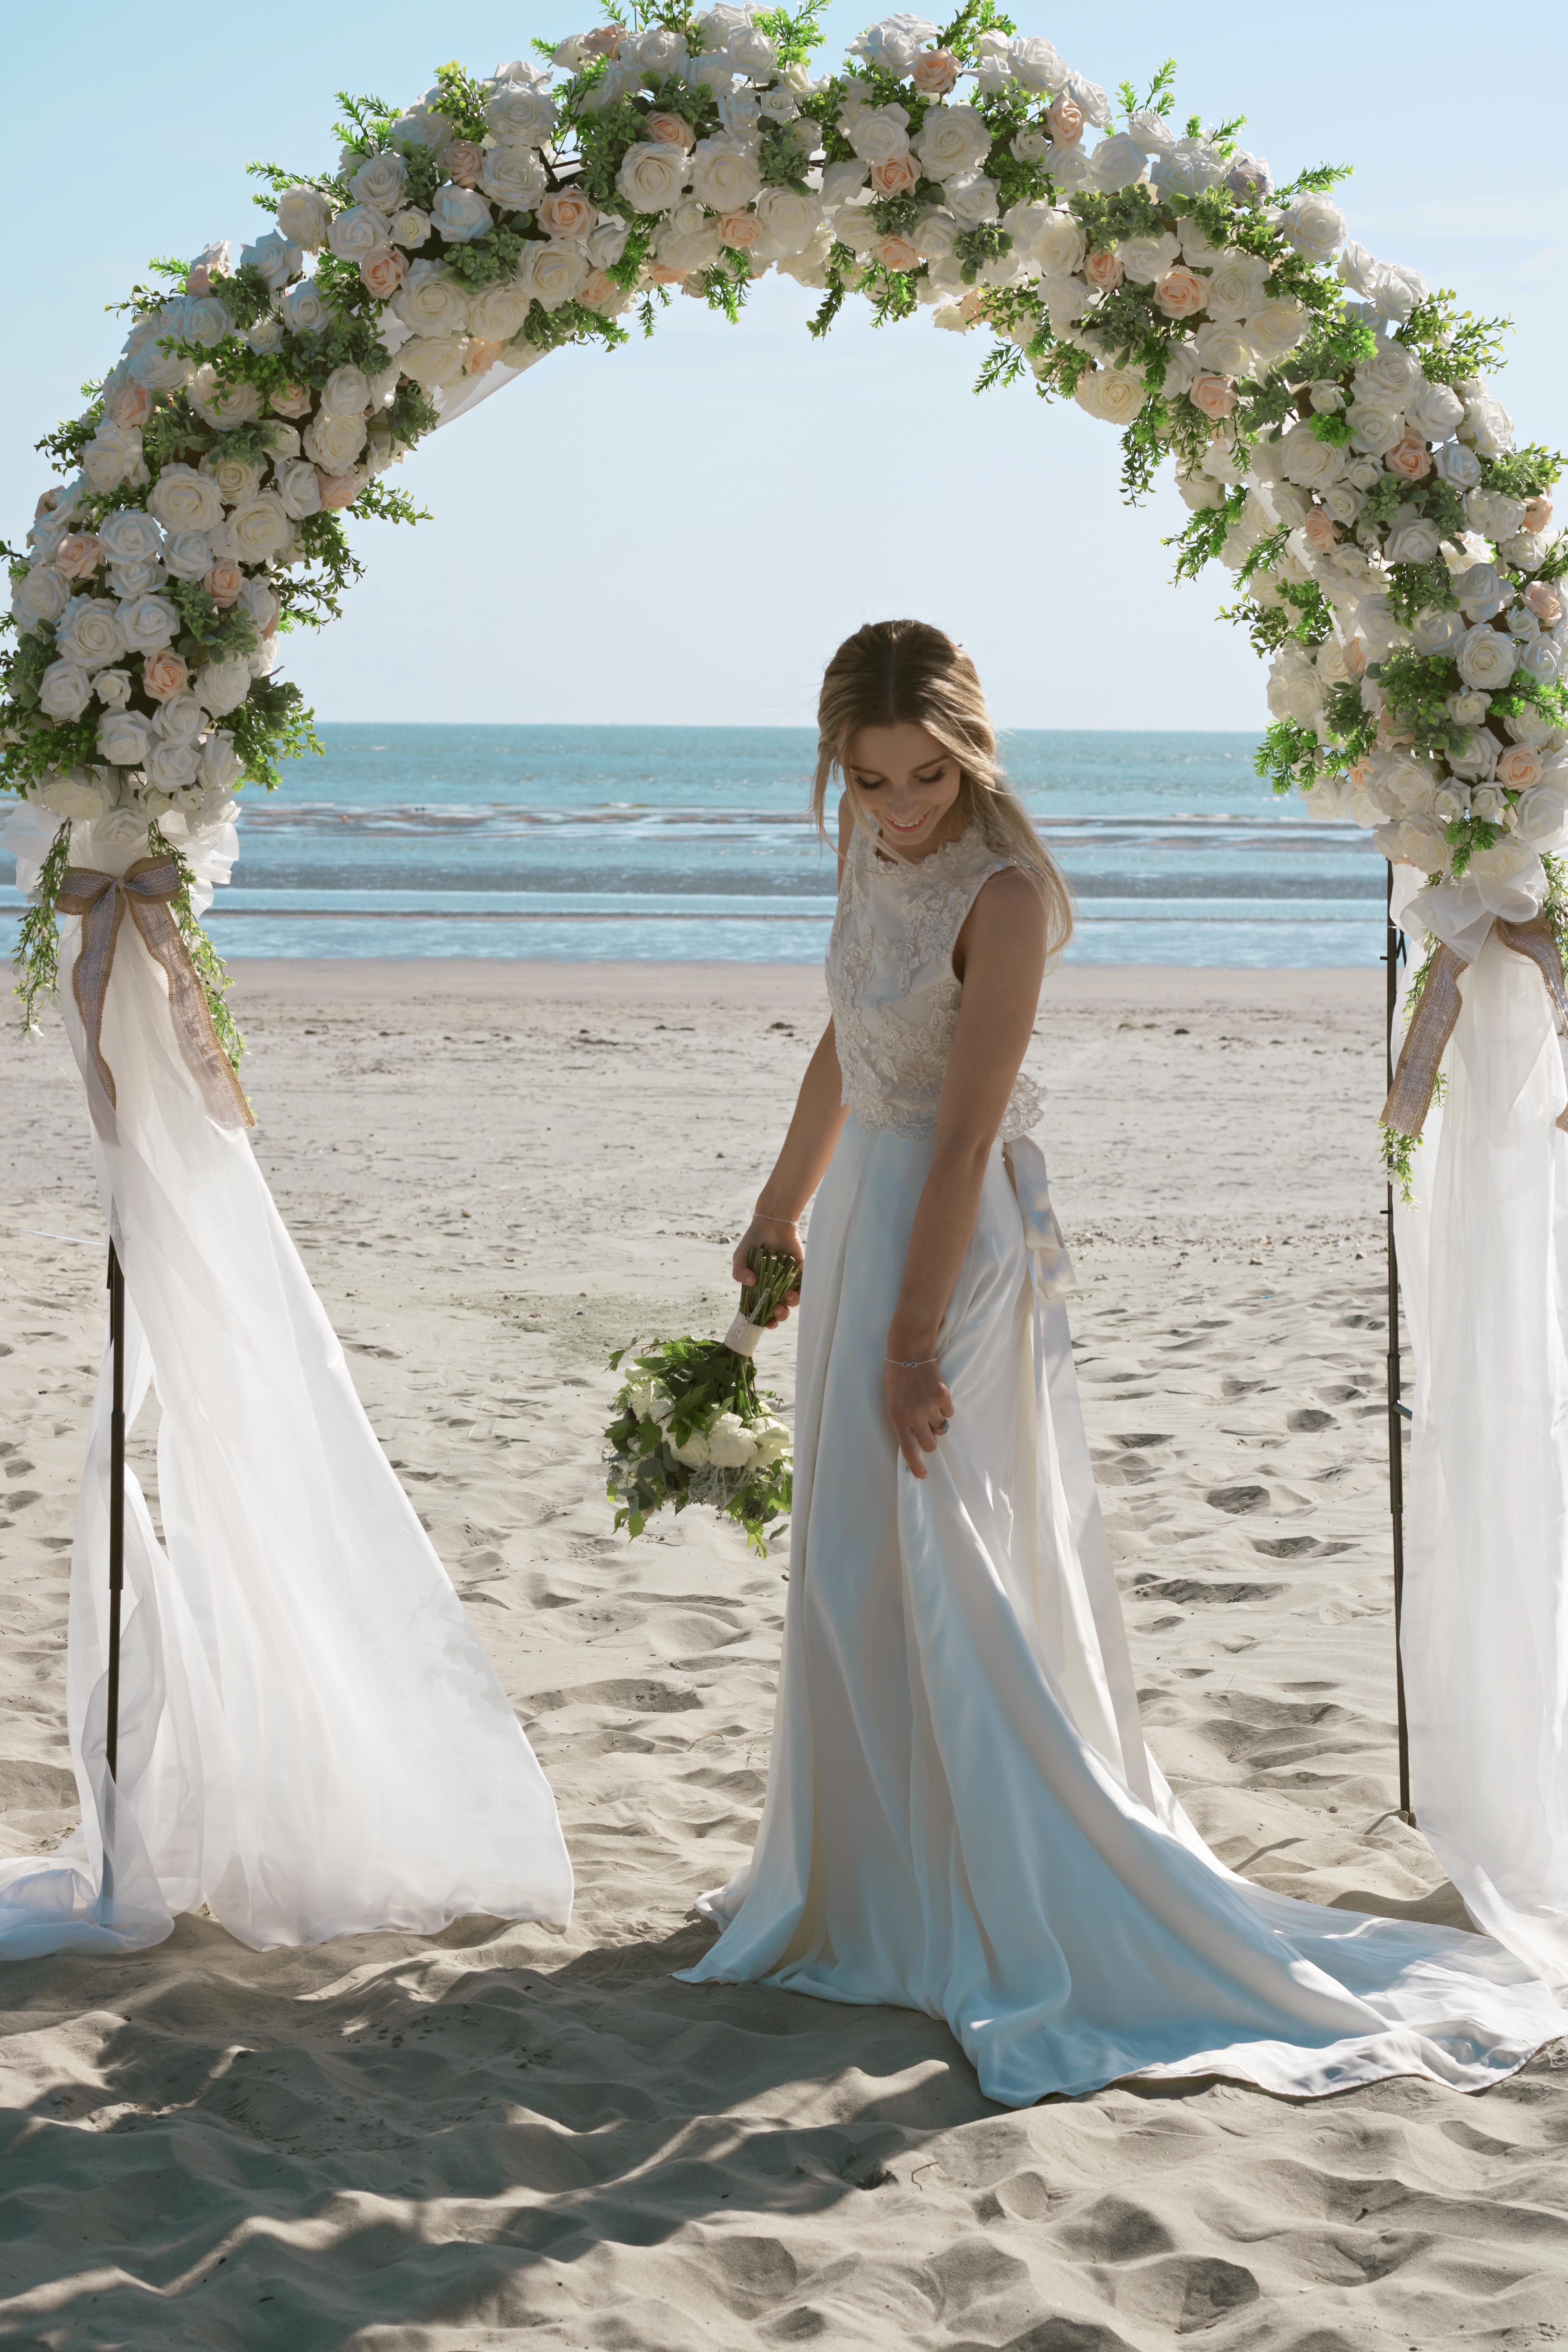 Beach Bride Portraits